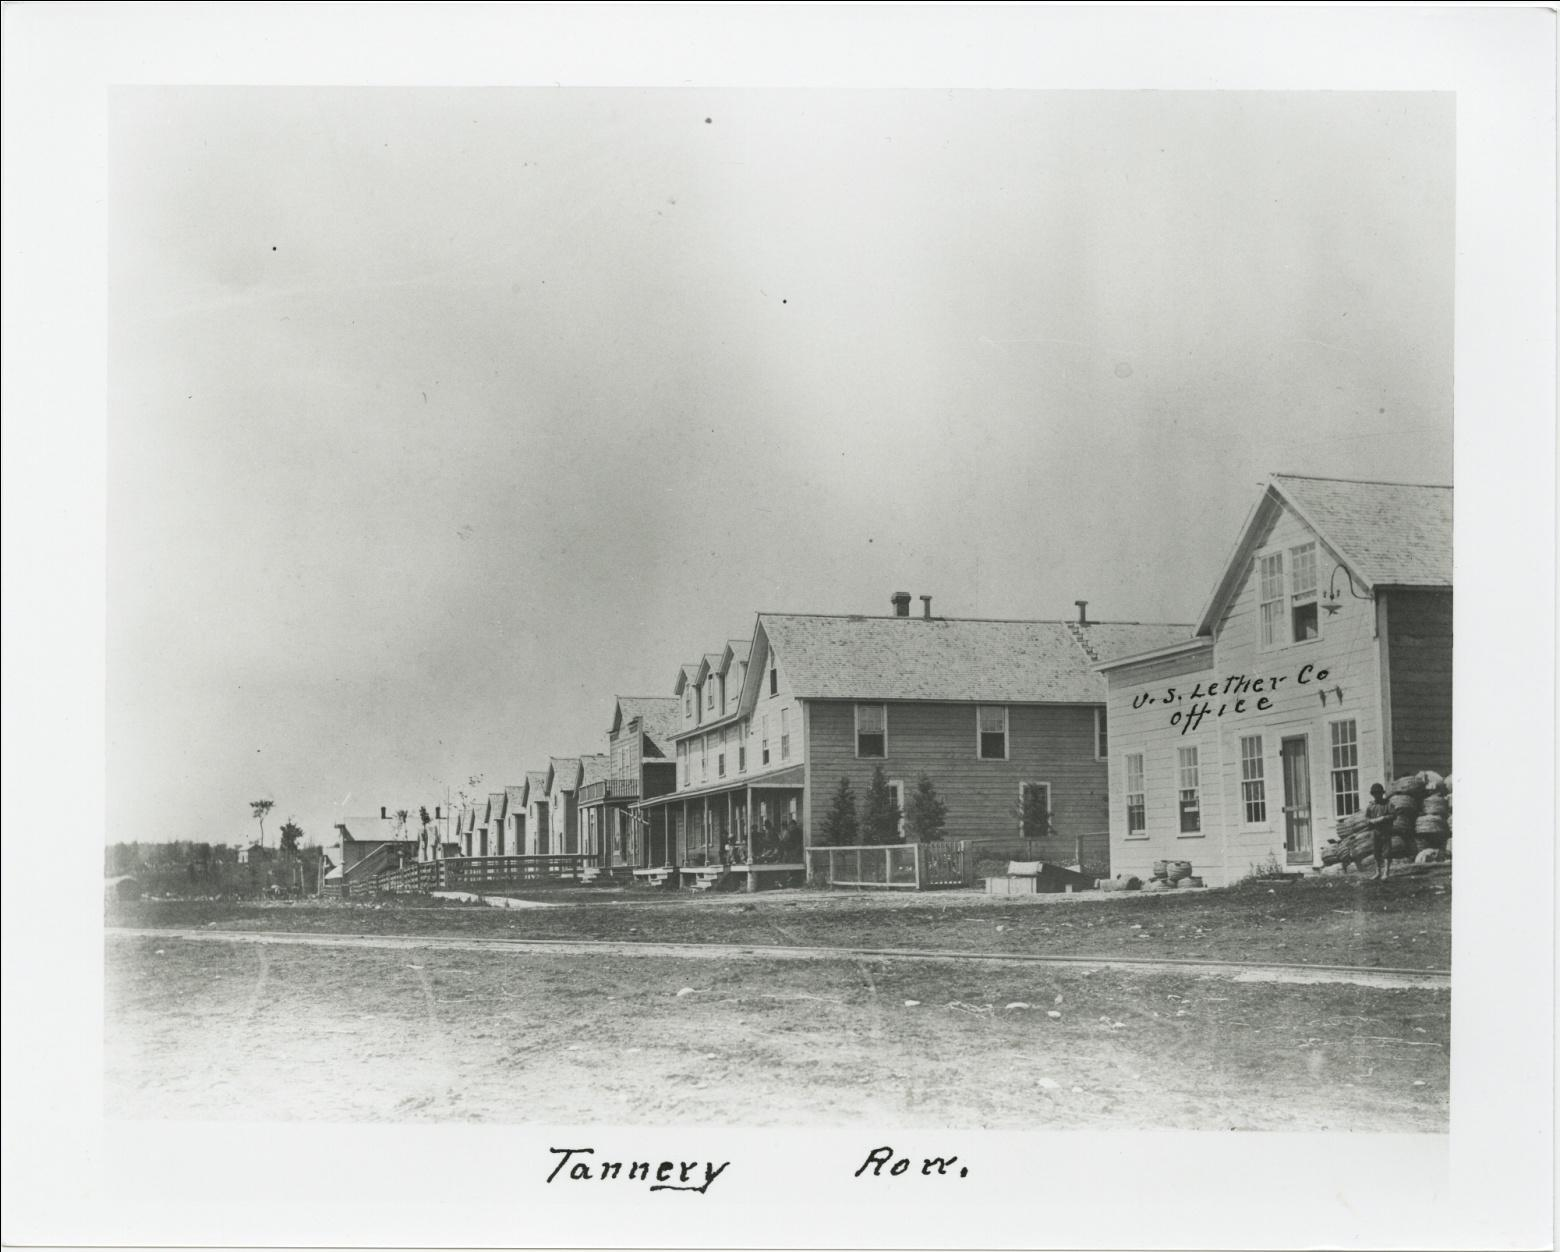 """C:\Users\Robert P. Rusch\Desktop\II. RLHSoc\Documents & Photos-Scanned\Rib Lake History 10700-10799\10788-P. """"Tannery Row"""" US Leather Co. office, view west, dow.jpg"""